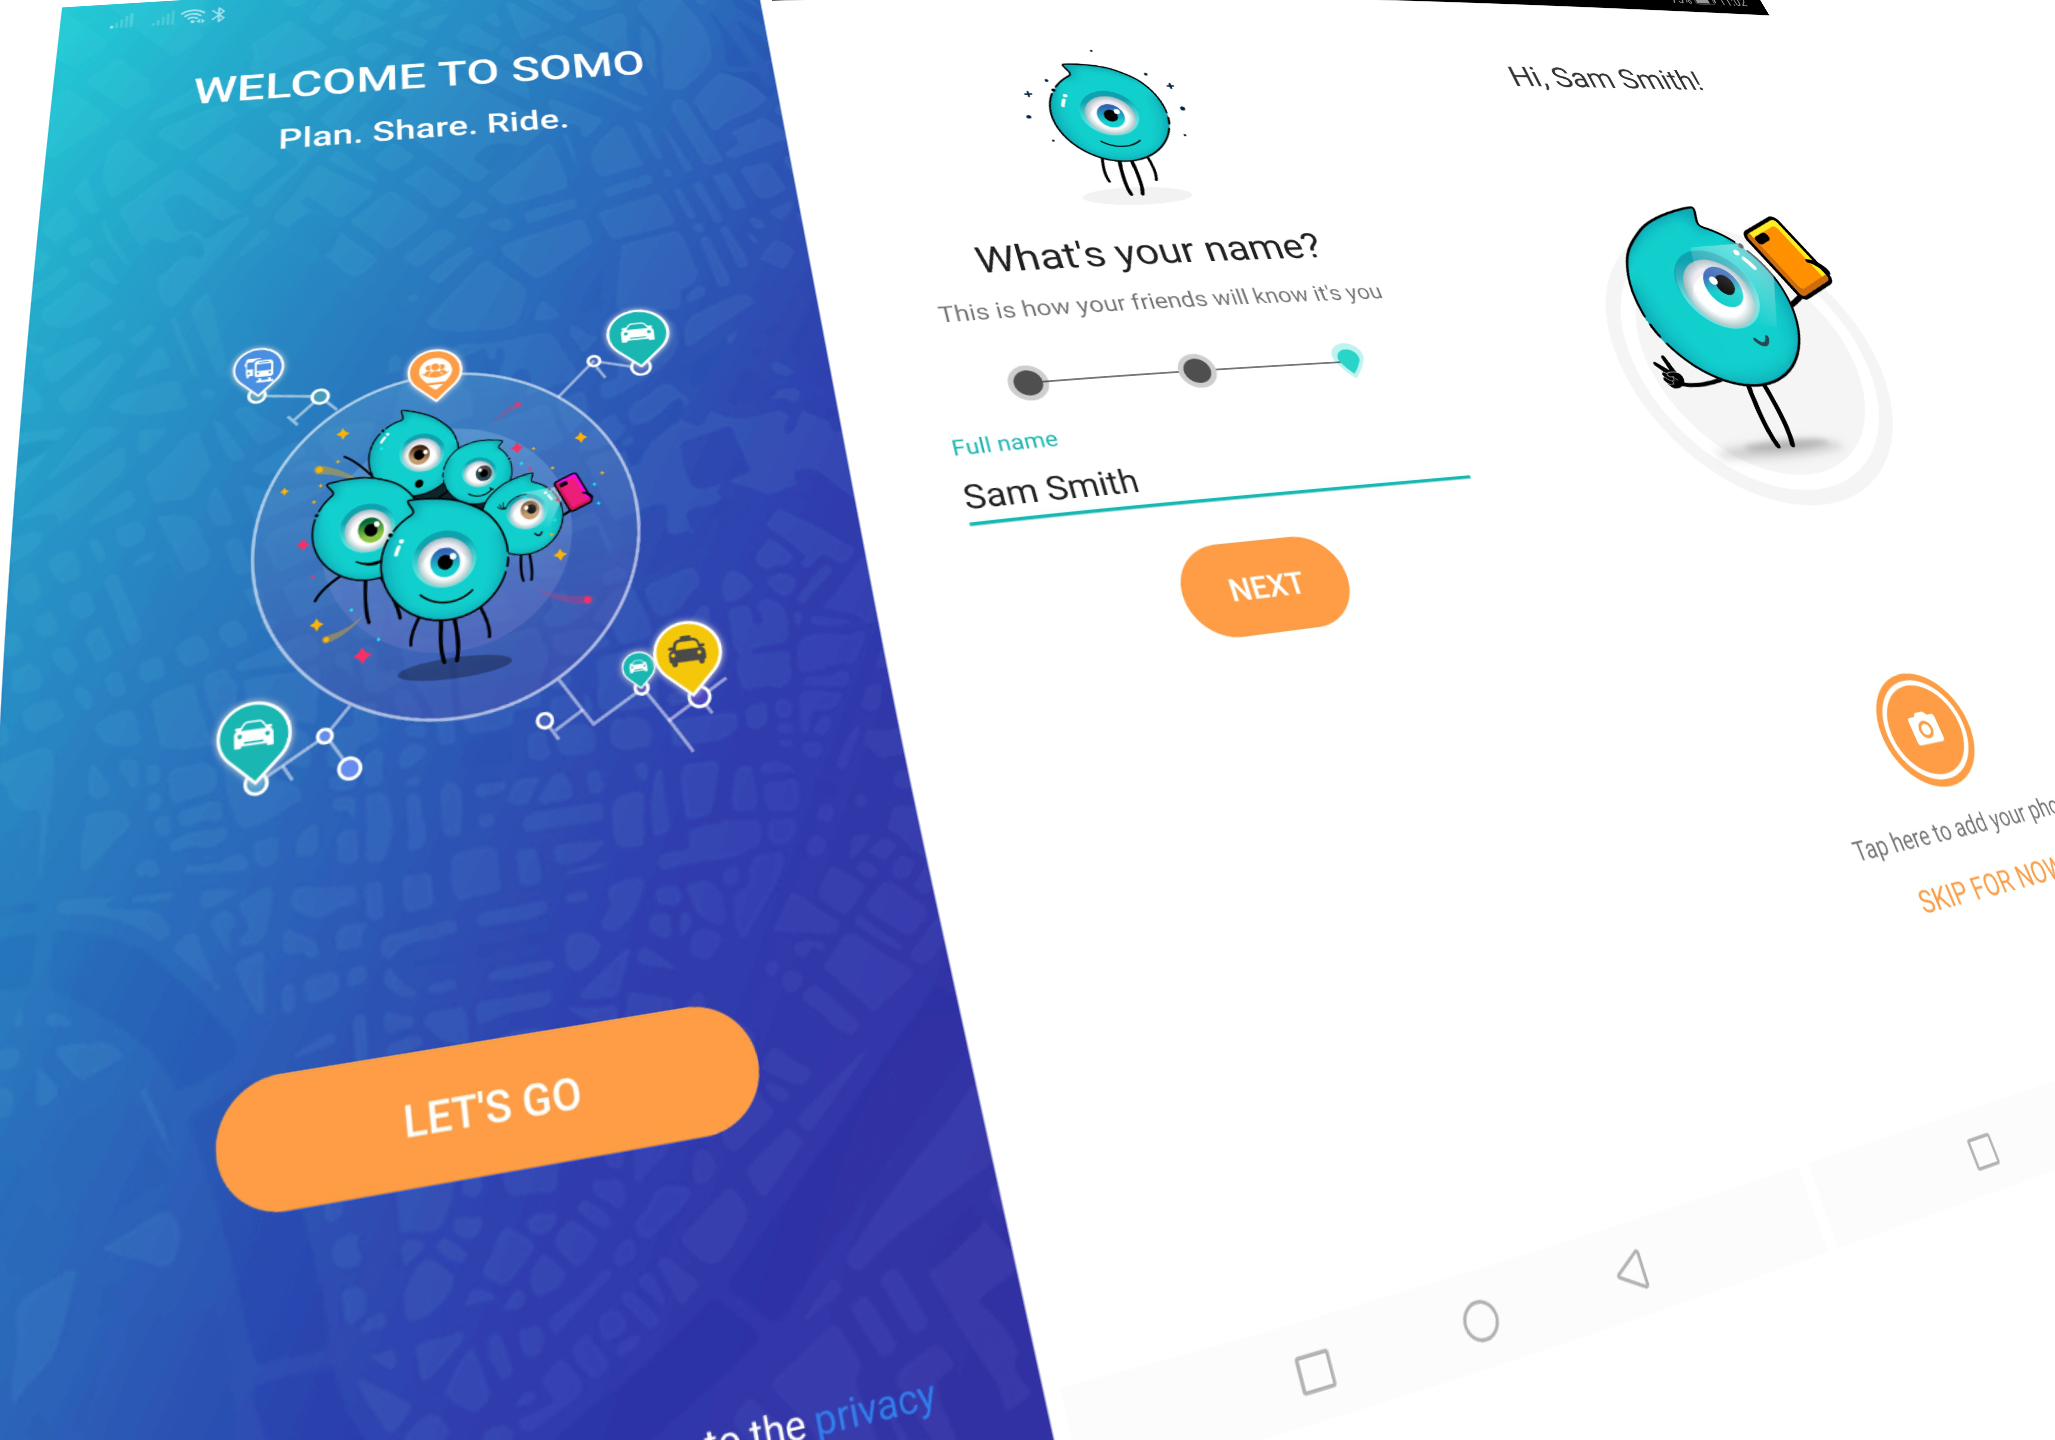 Here launches SoMo, a social transport app for planning and sharing